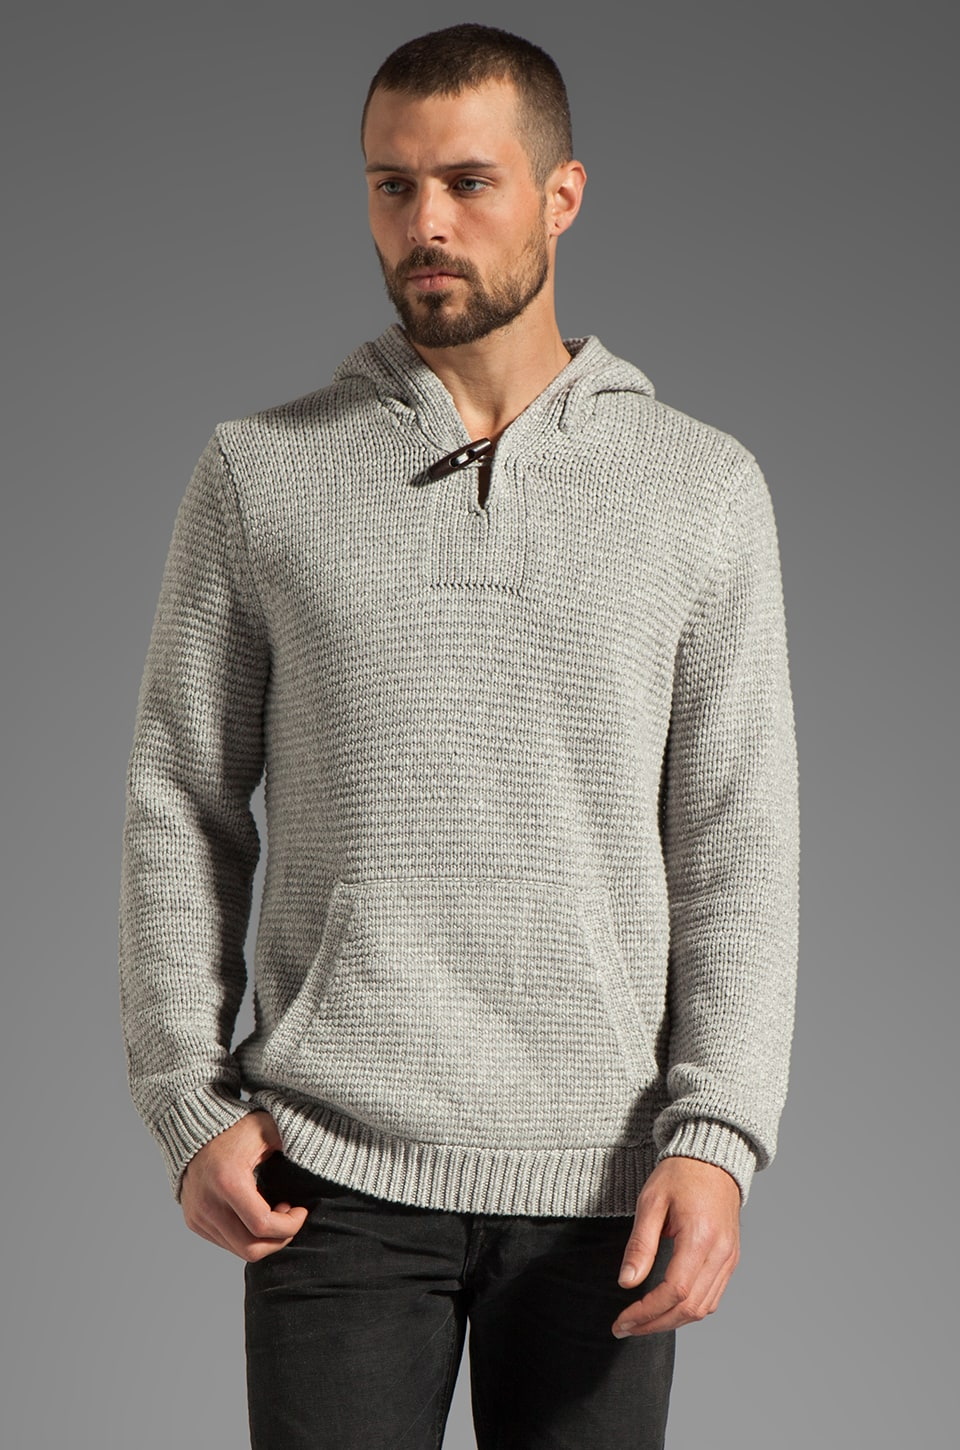 Vince Heather Corded Sweater in Heather Steel